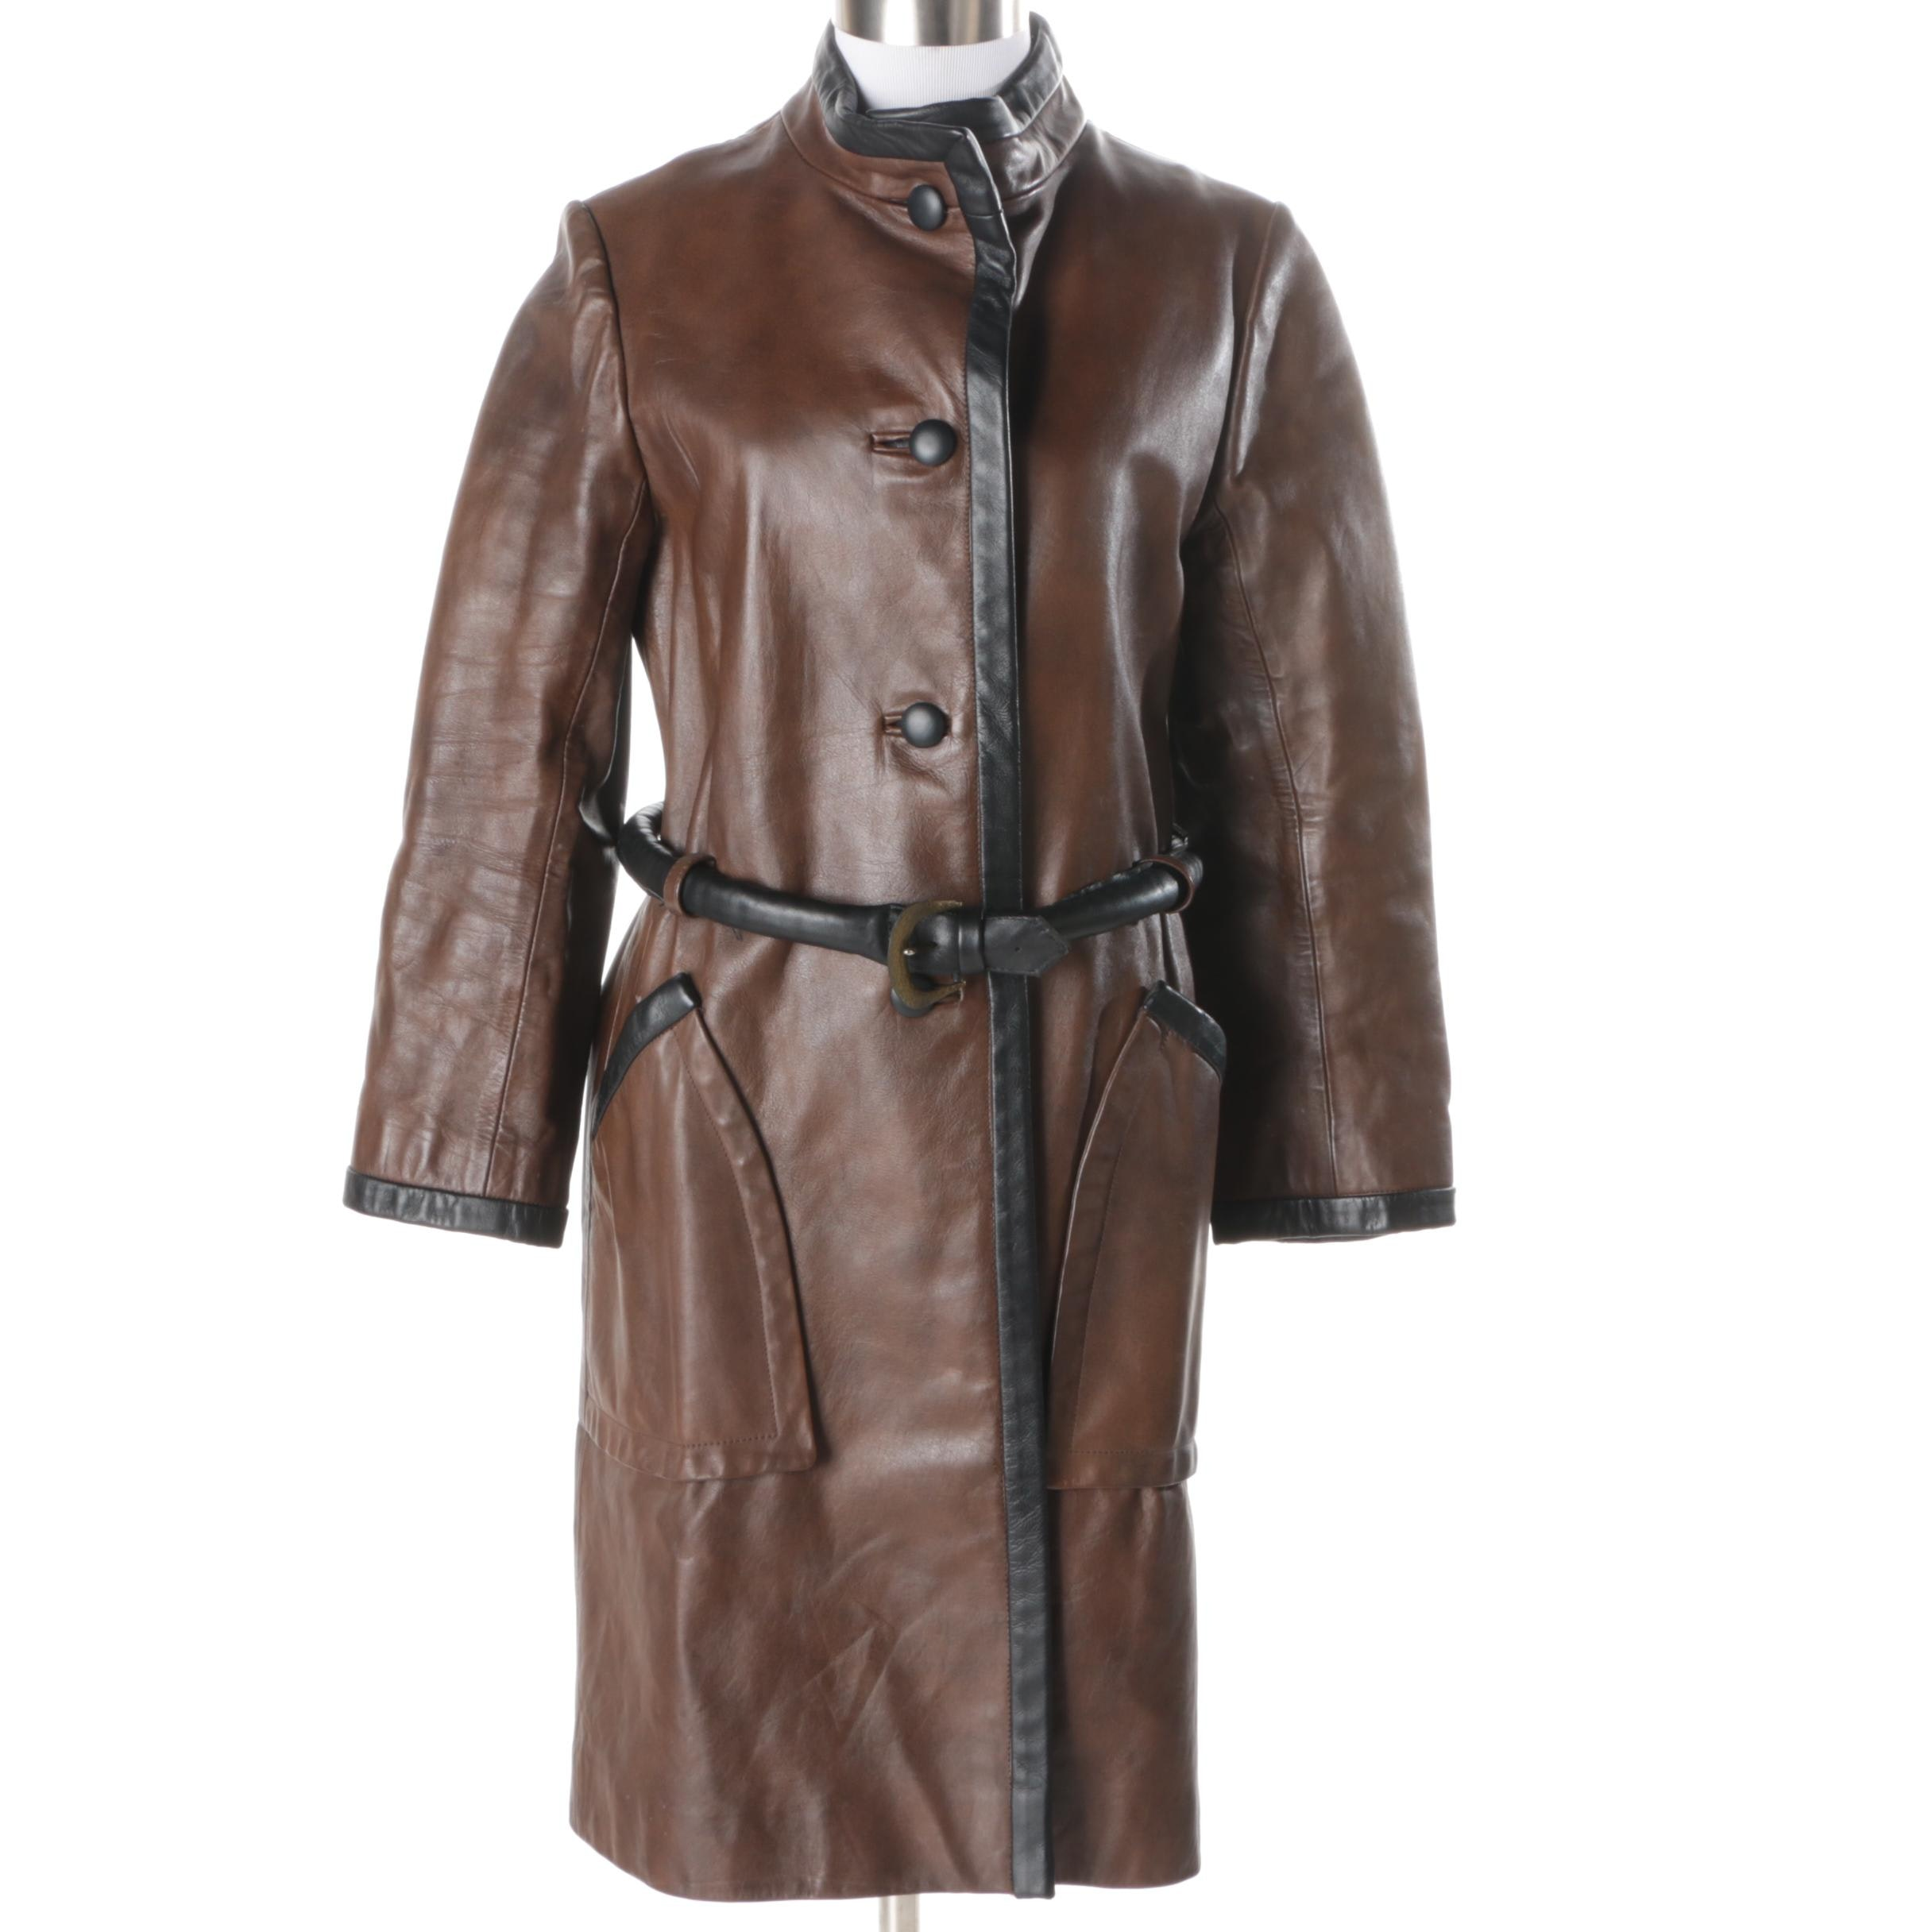 Women's Samuel Robert Brown Faux Leather Coat